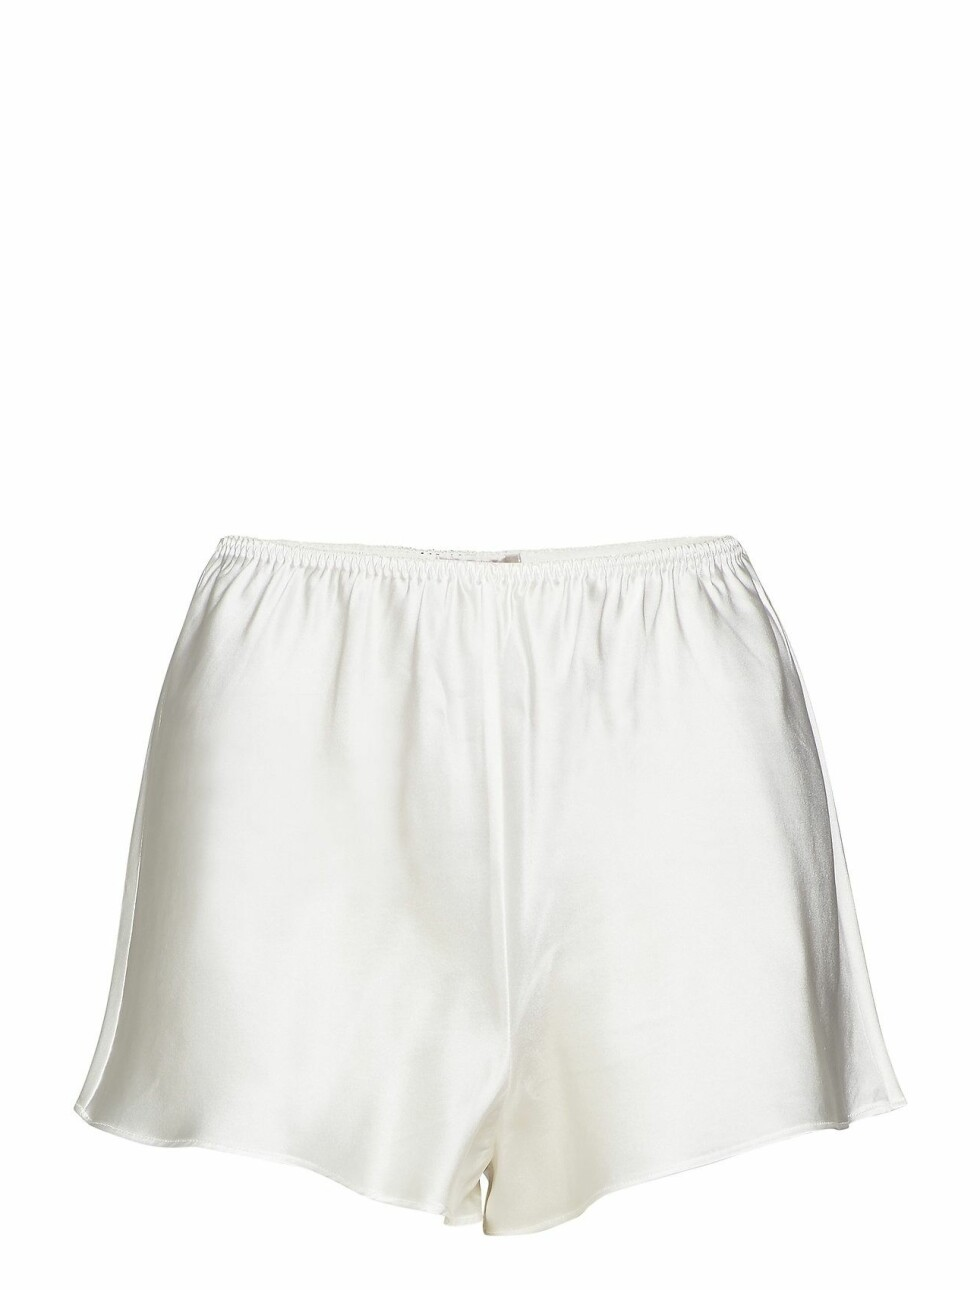 Silkeshorts fra Lady Avenue |500,-| https://www.boozt.com/no/no/lady-avenue/pure-silk-french-knickers_19186688/19186689?navId=67362&group=listing&position=1500000